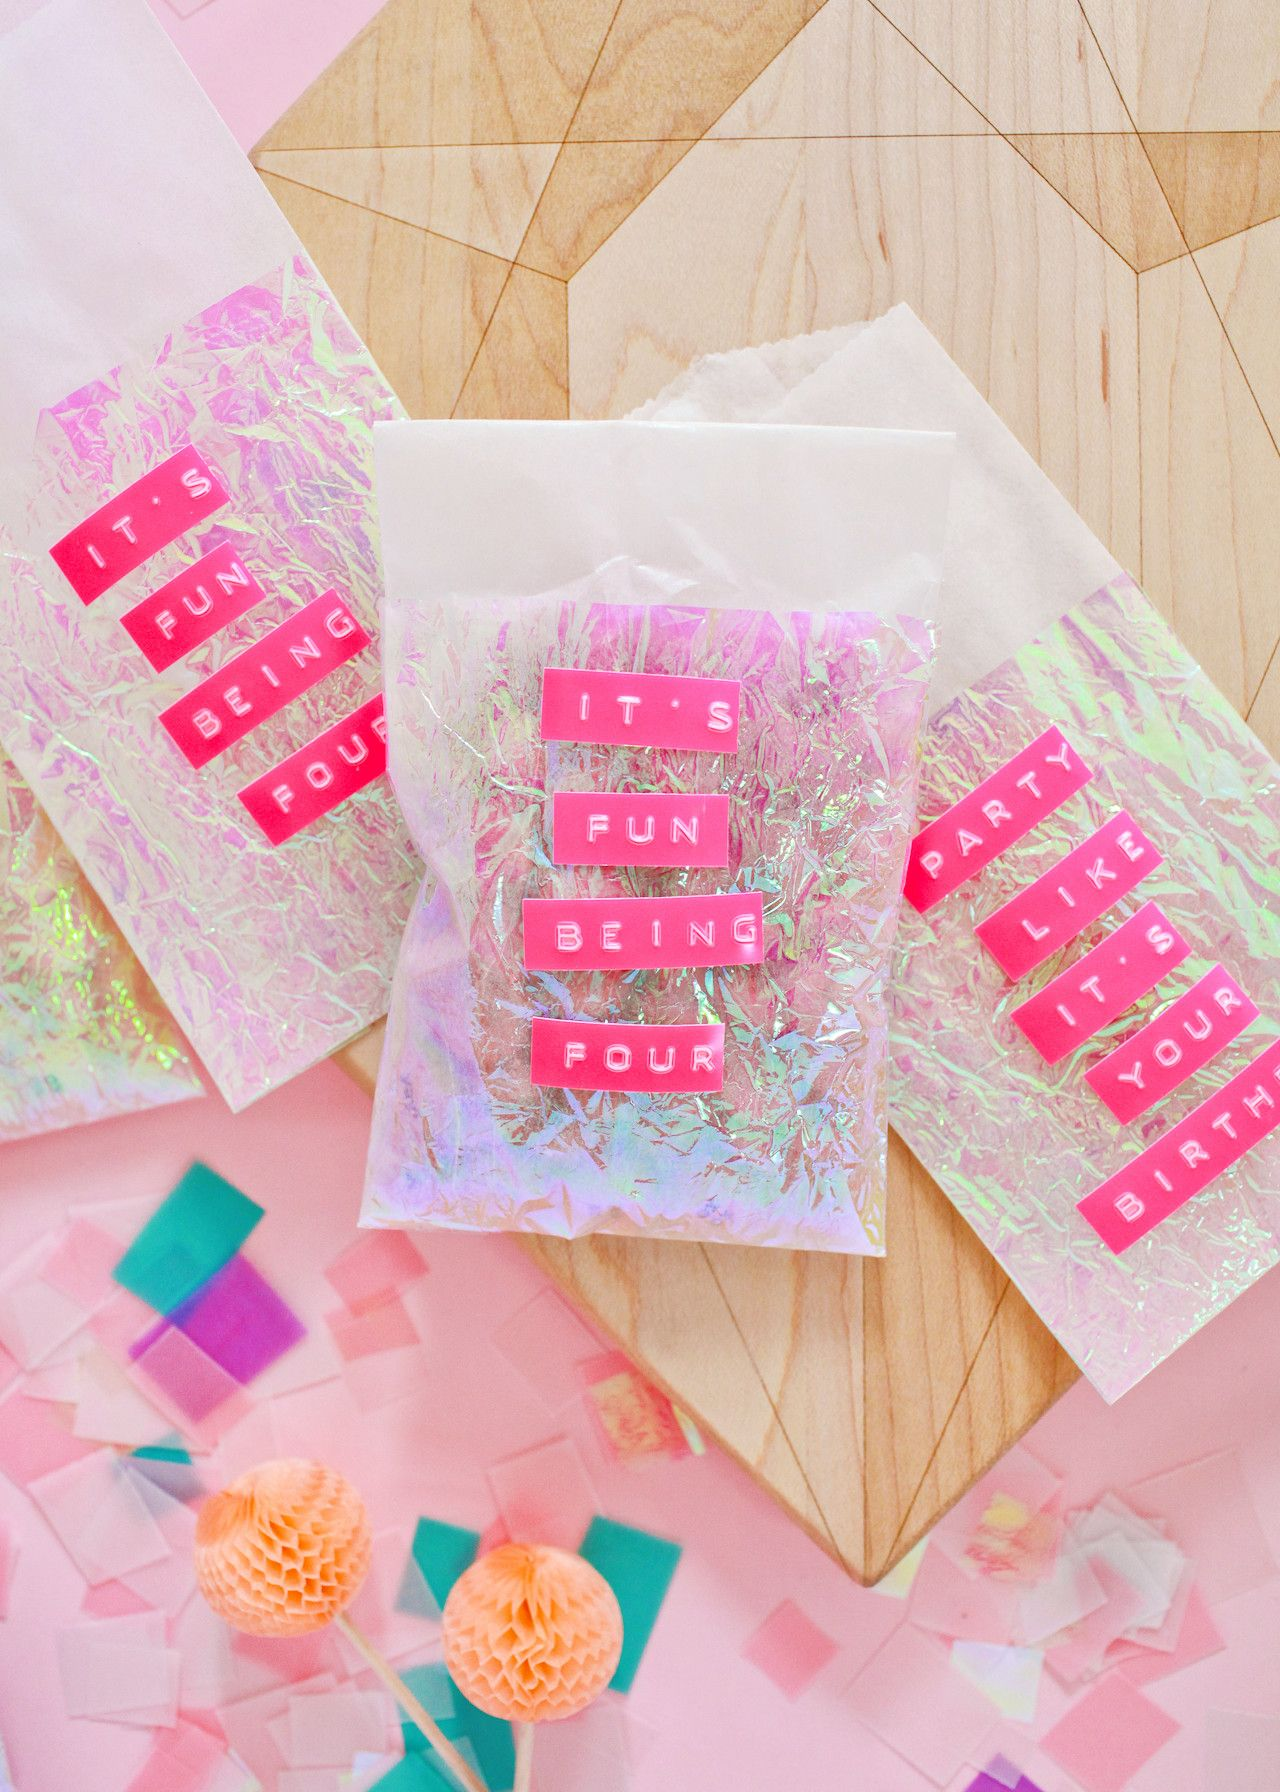 DIY Iridescent Favor Bags | Pinterest | Favor bags, Iridescent and ...